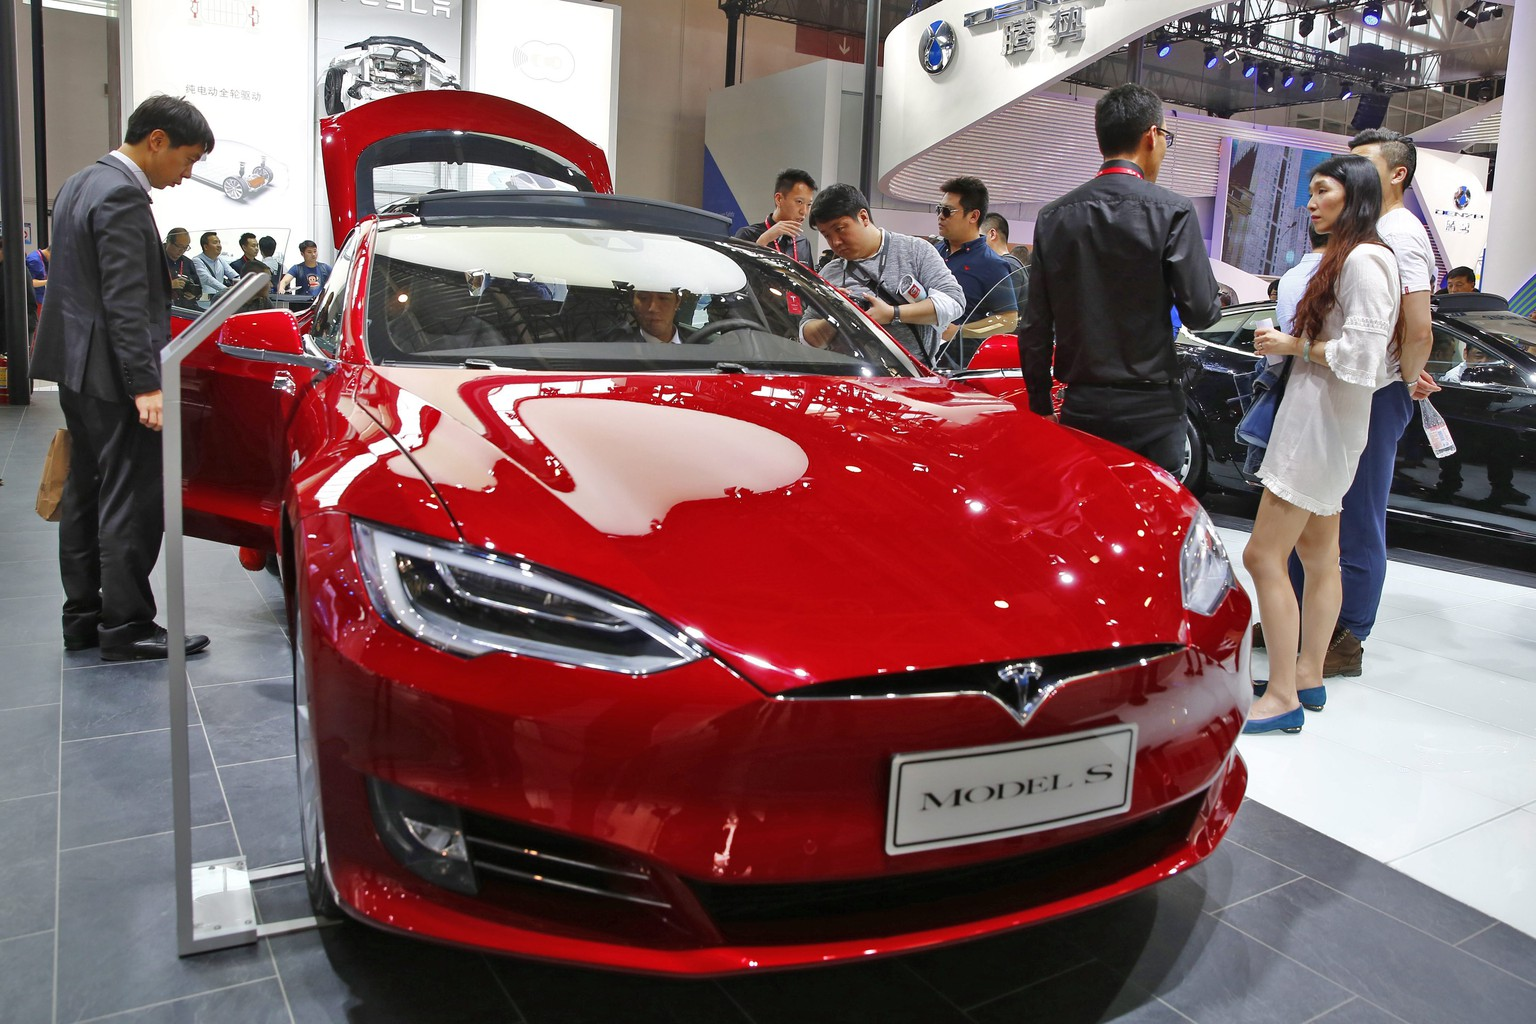 epa05400297 (FILE) A file picture dated 26 April 2016 shows a Tesla model S electric car on display at the Auto China 2016 motor show in Beijing, China. The carmaker in a blog post on 30 June 2016 revealed that the National Highway Transportation Safety Administration (NHTSA) on 29 June 2016 was opening a preliminary evaluation into a fatal crash of one of Tesla's Model S cars. The driver was killed on 07 May 2016 during a test drive in autopilot mode when a tractor trailer crashed with the car. It is the first known fatality related to a self-driving car.  EPA/WU HONG *** Local Caption *** 52723199